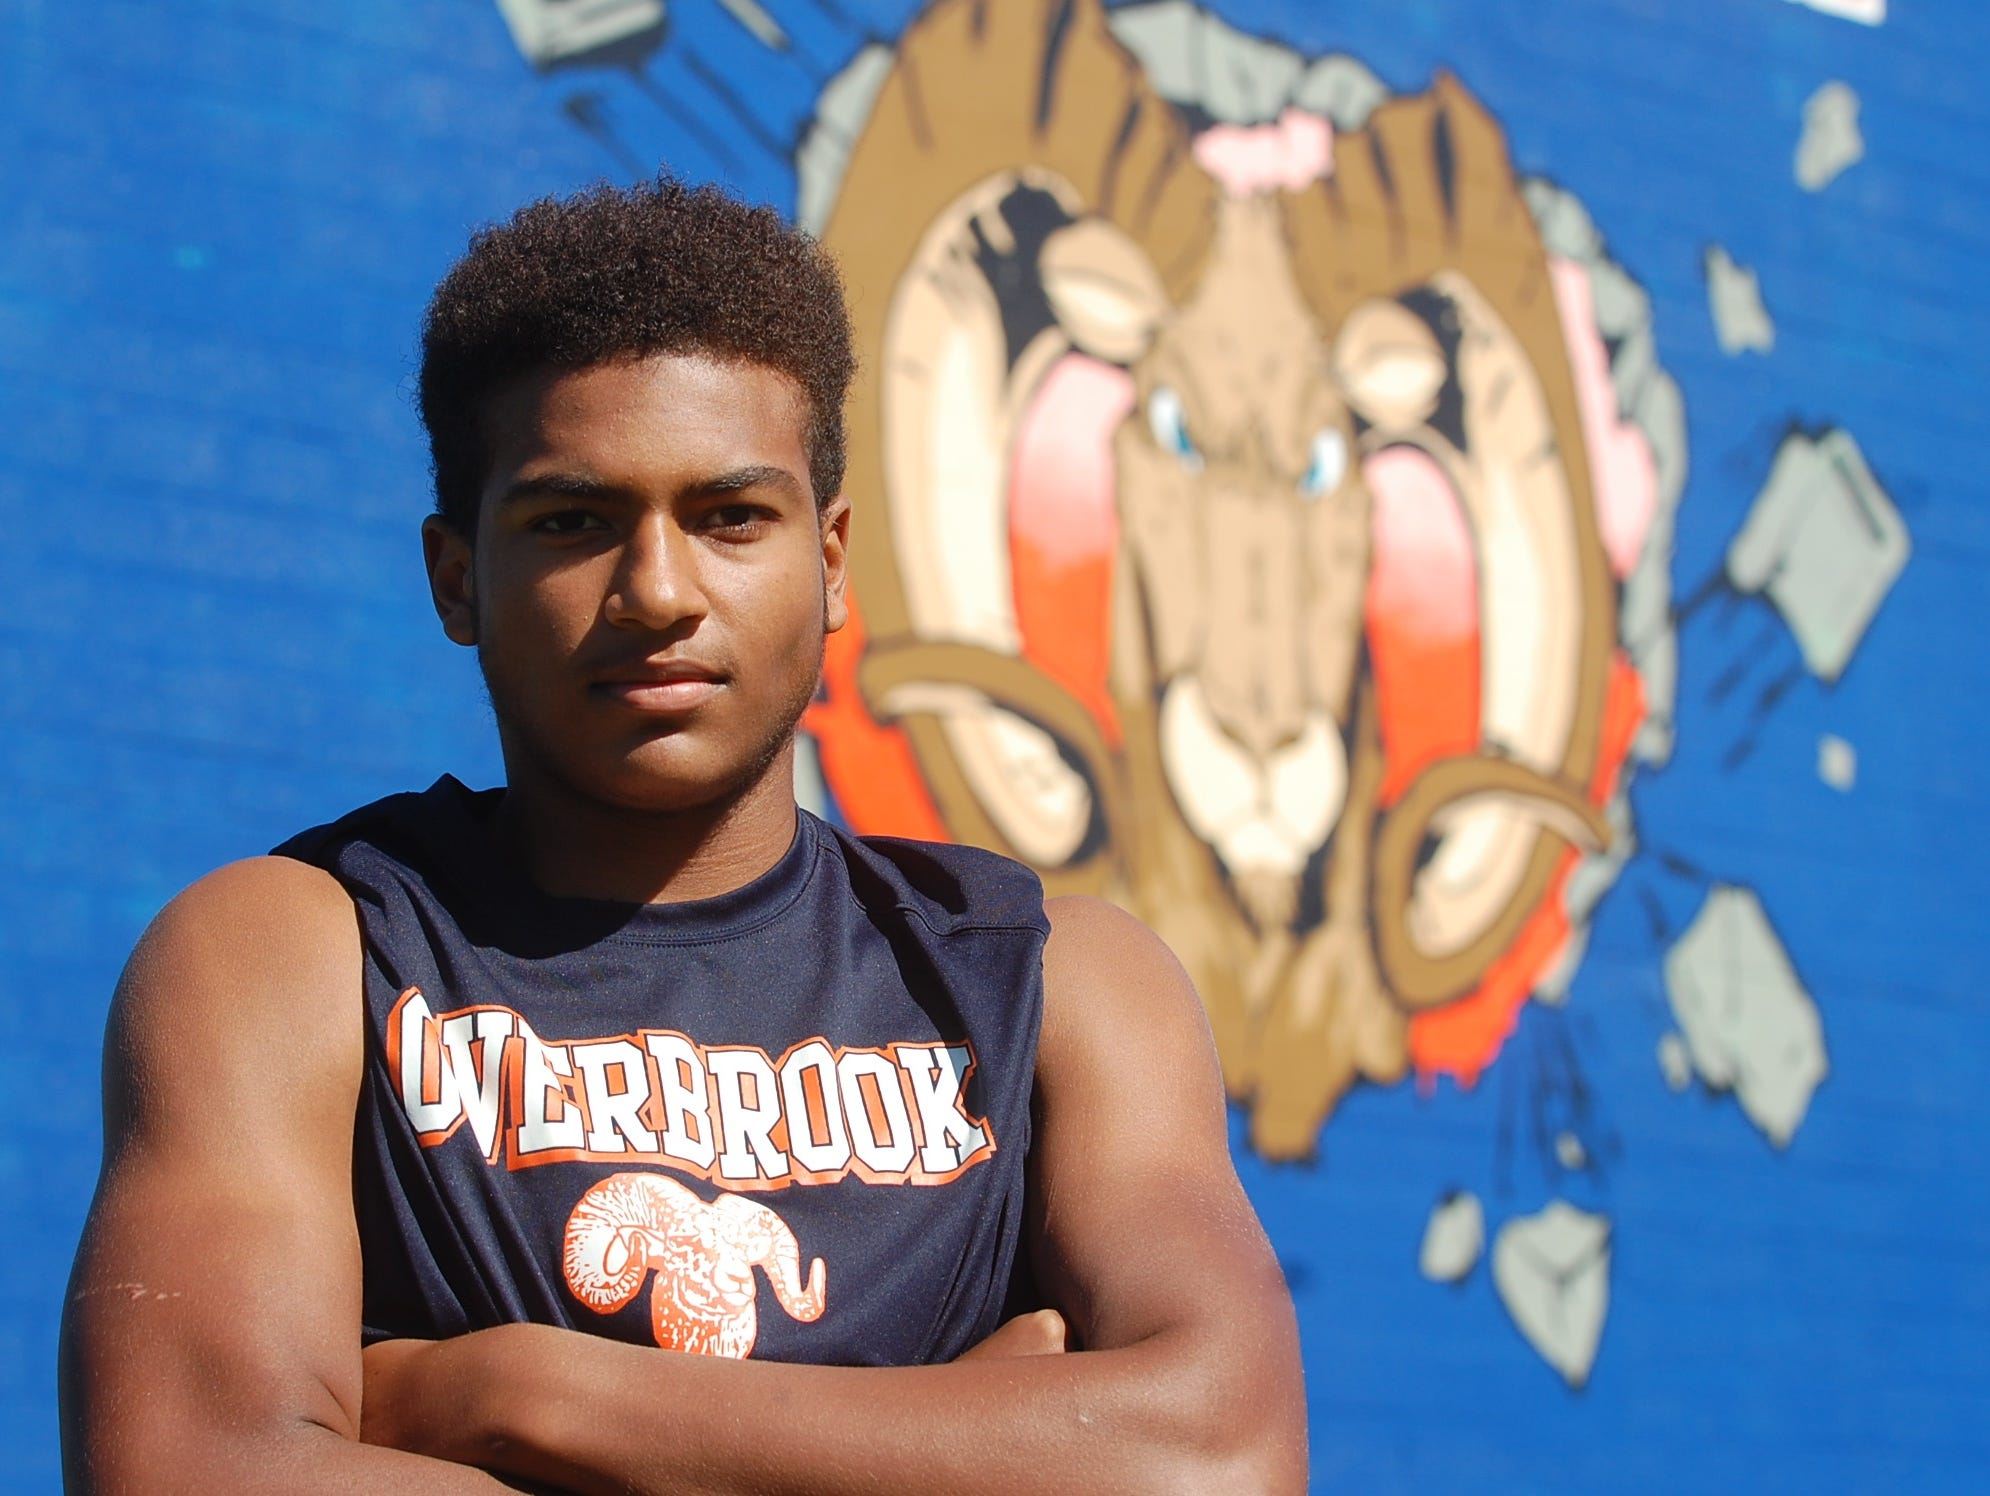 A senior at Overbrook High School, quarterback Tommy Wyatt has made considerable strides over a year ago.